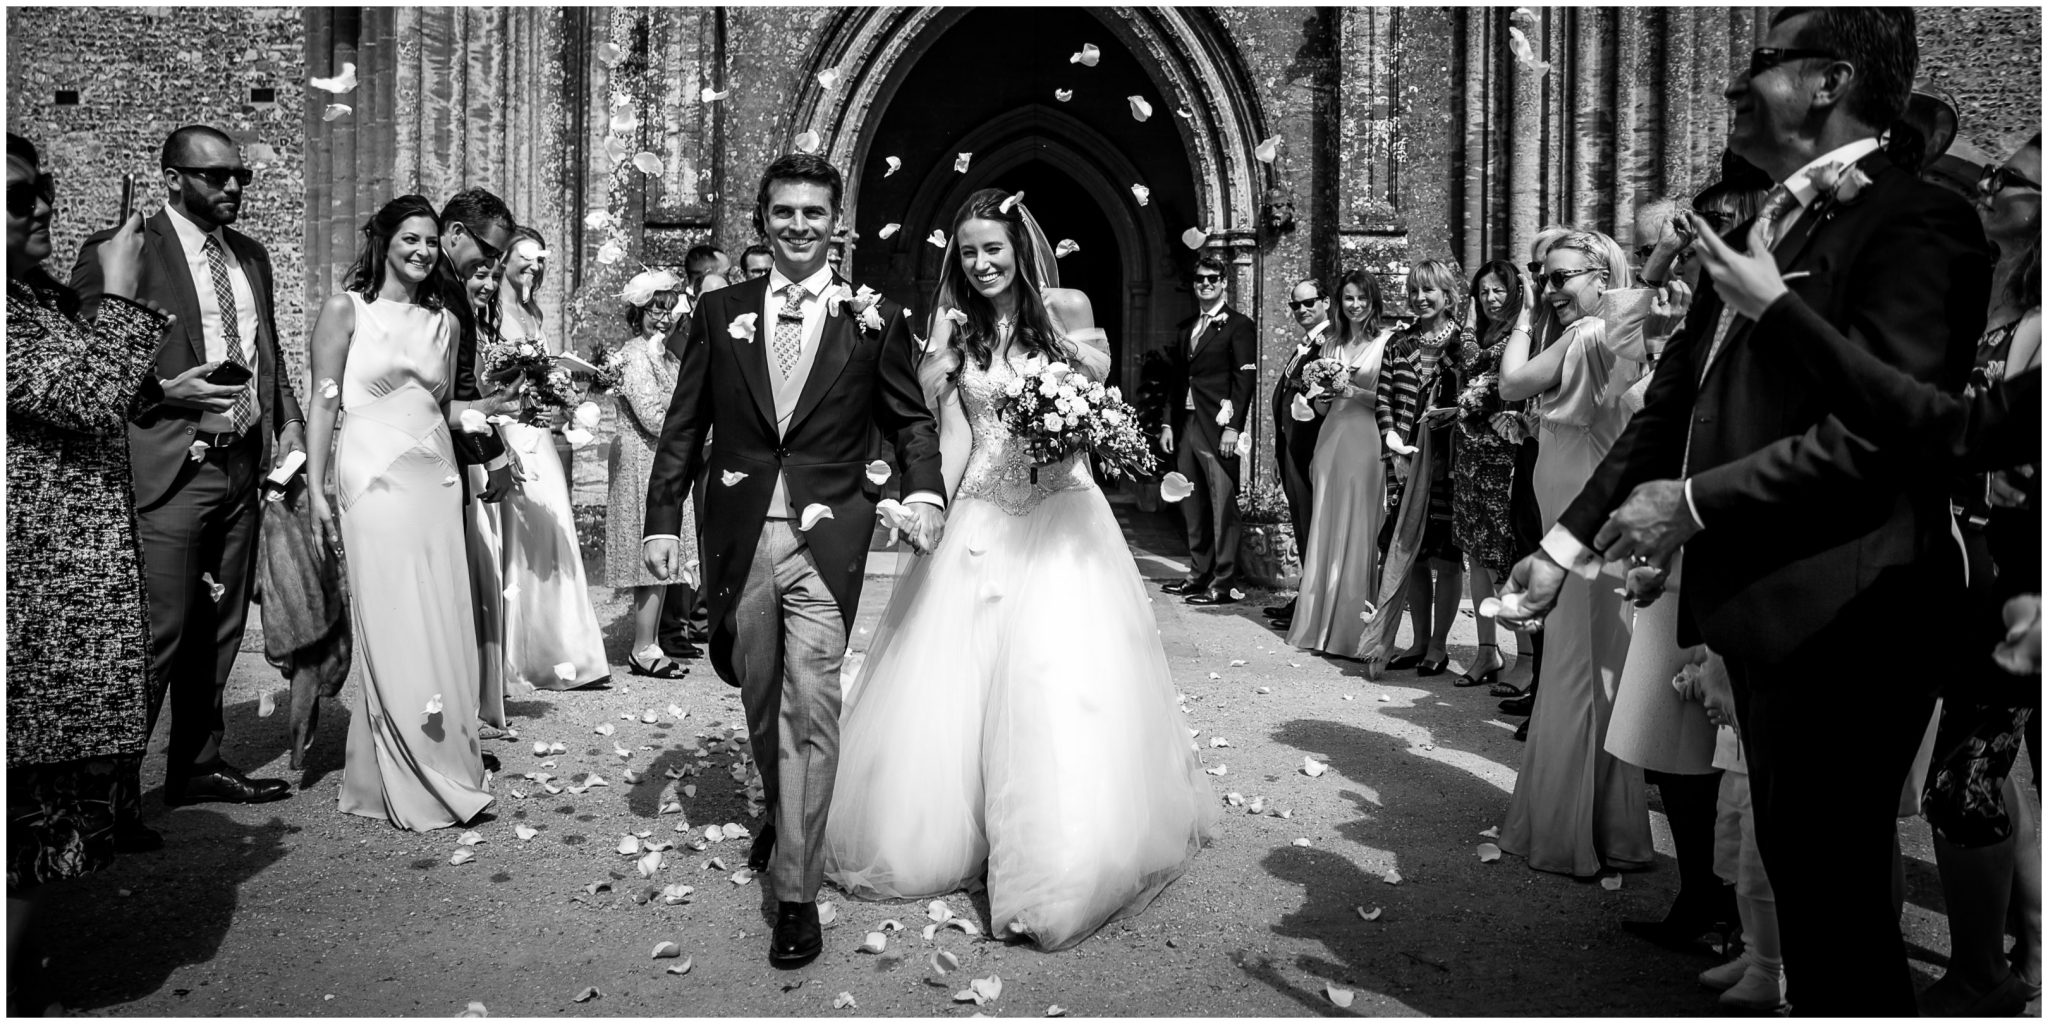 Bride and groom exit church to confetti